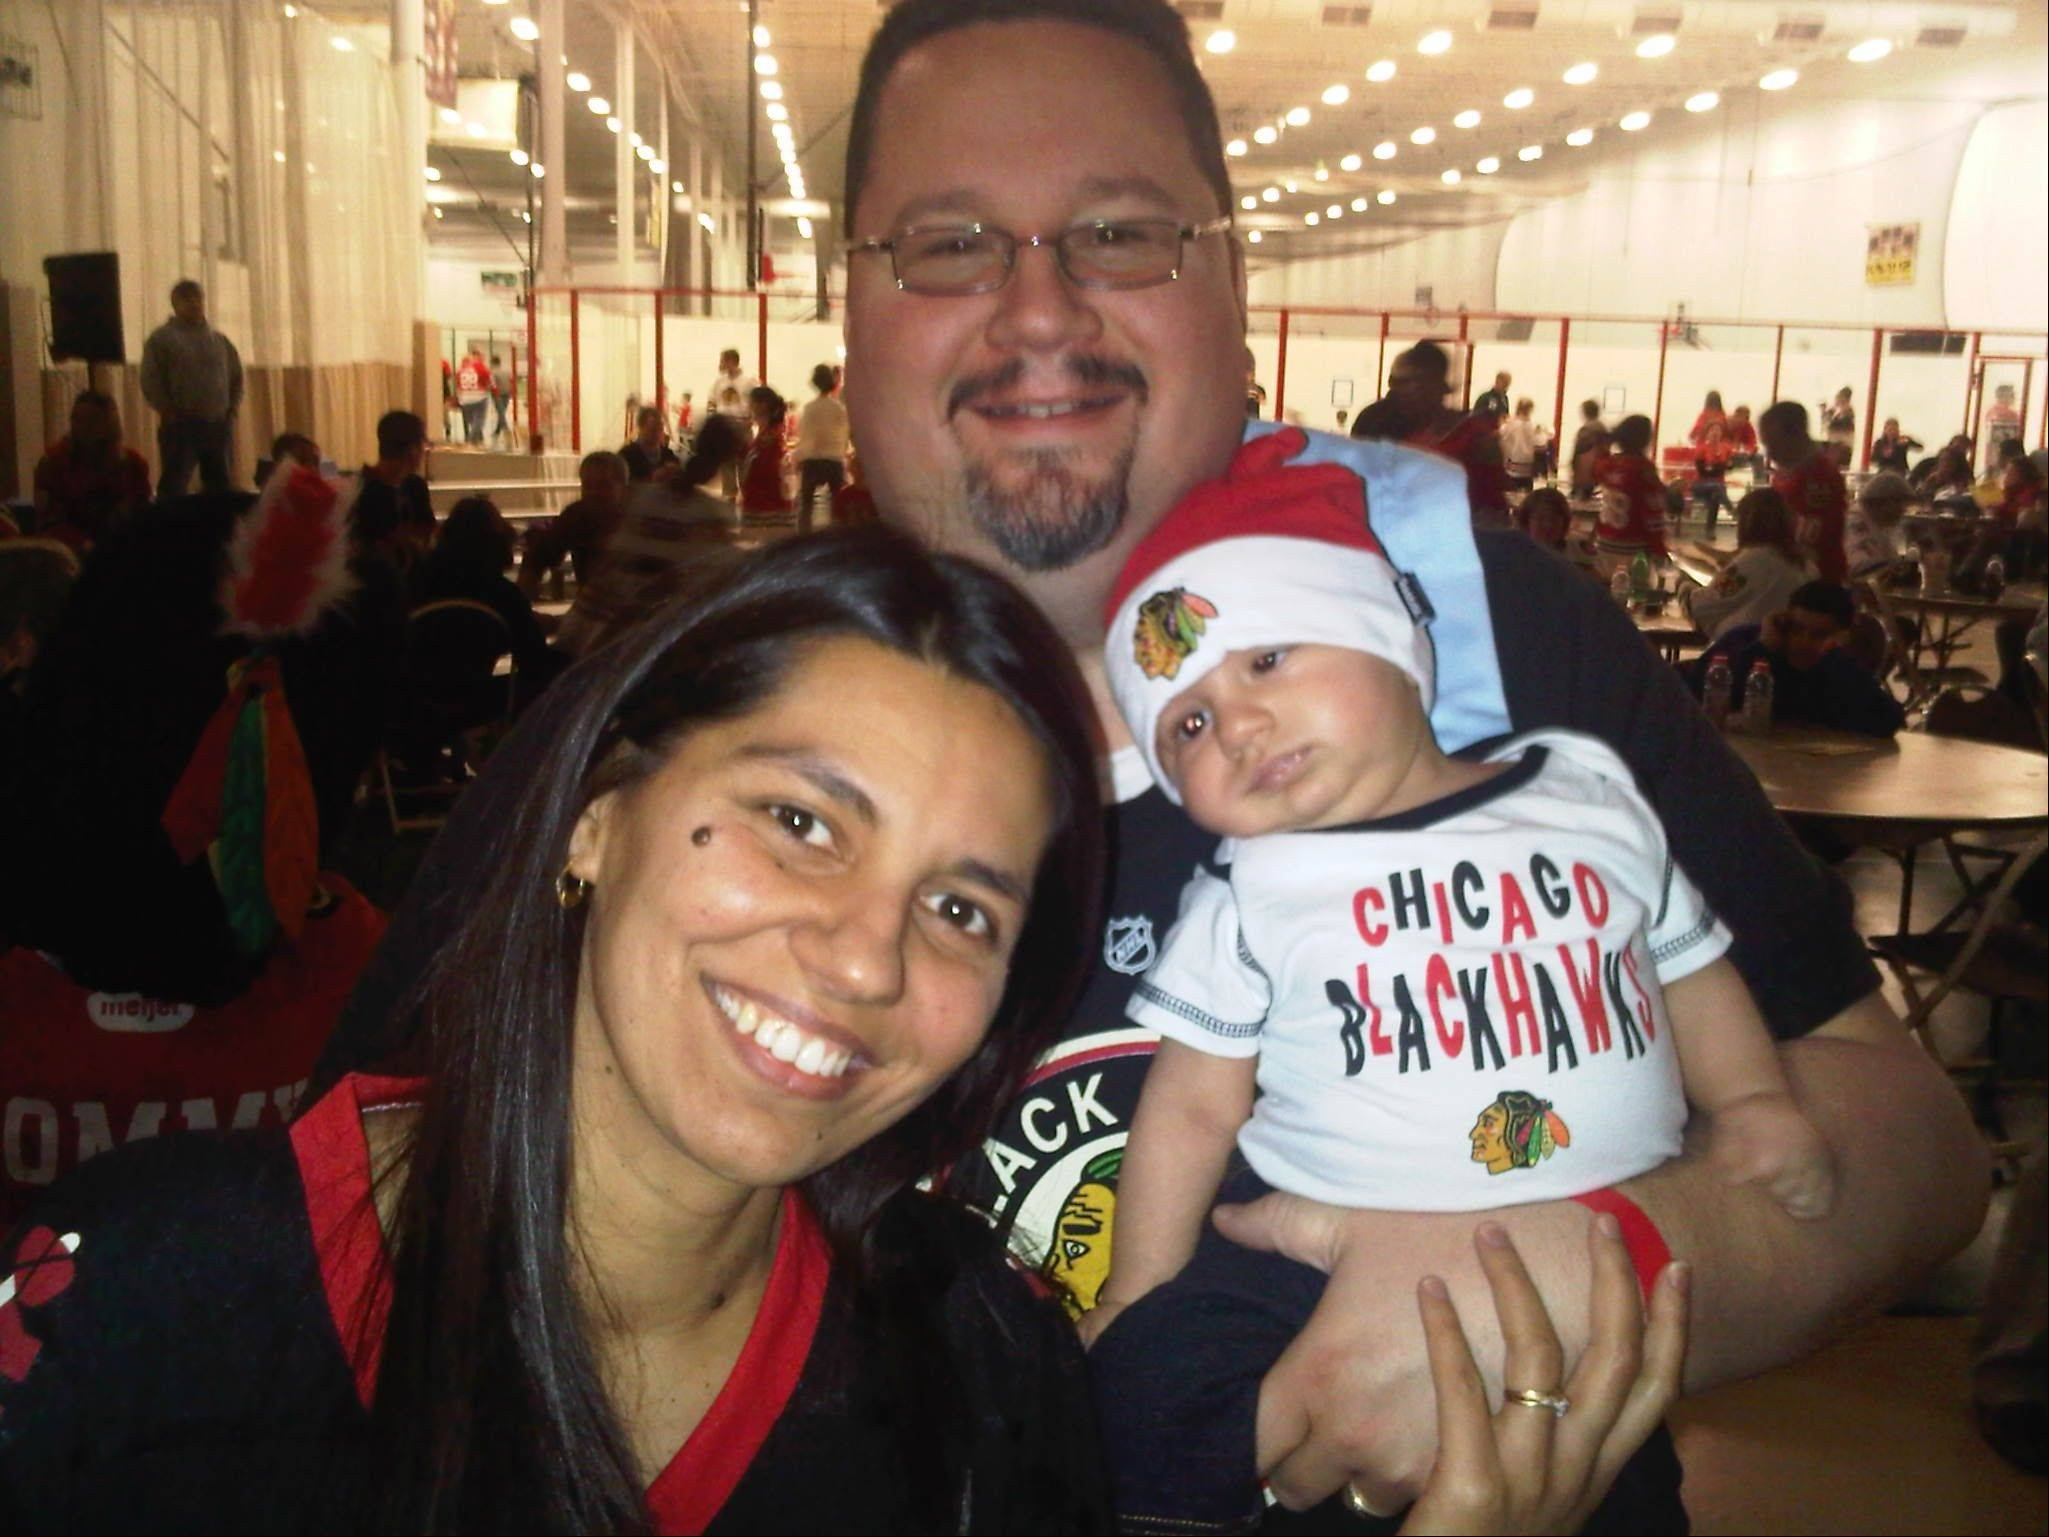 The Blackhawks' Roadwatch Party included Gages Lake residents Melinda and Raymond Clark and their 3-month-old son Edward.